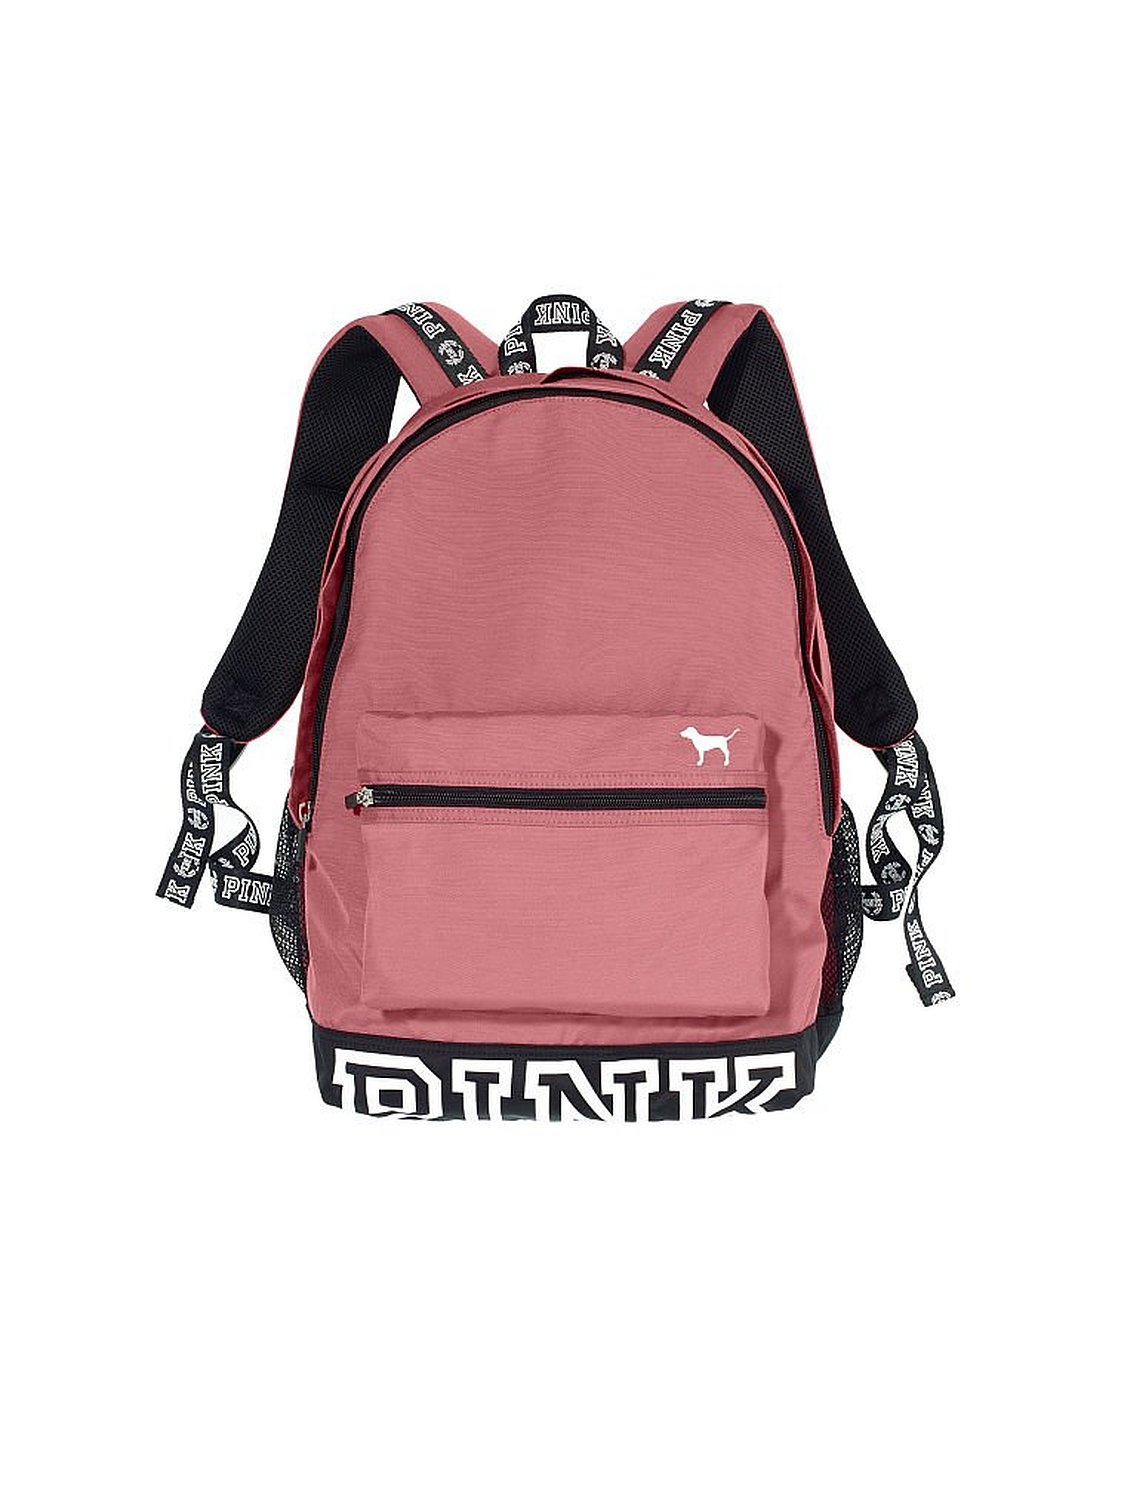 Victoria's Secret Pink Campus Backpack -